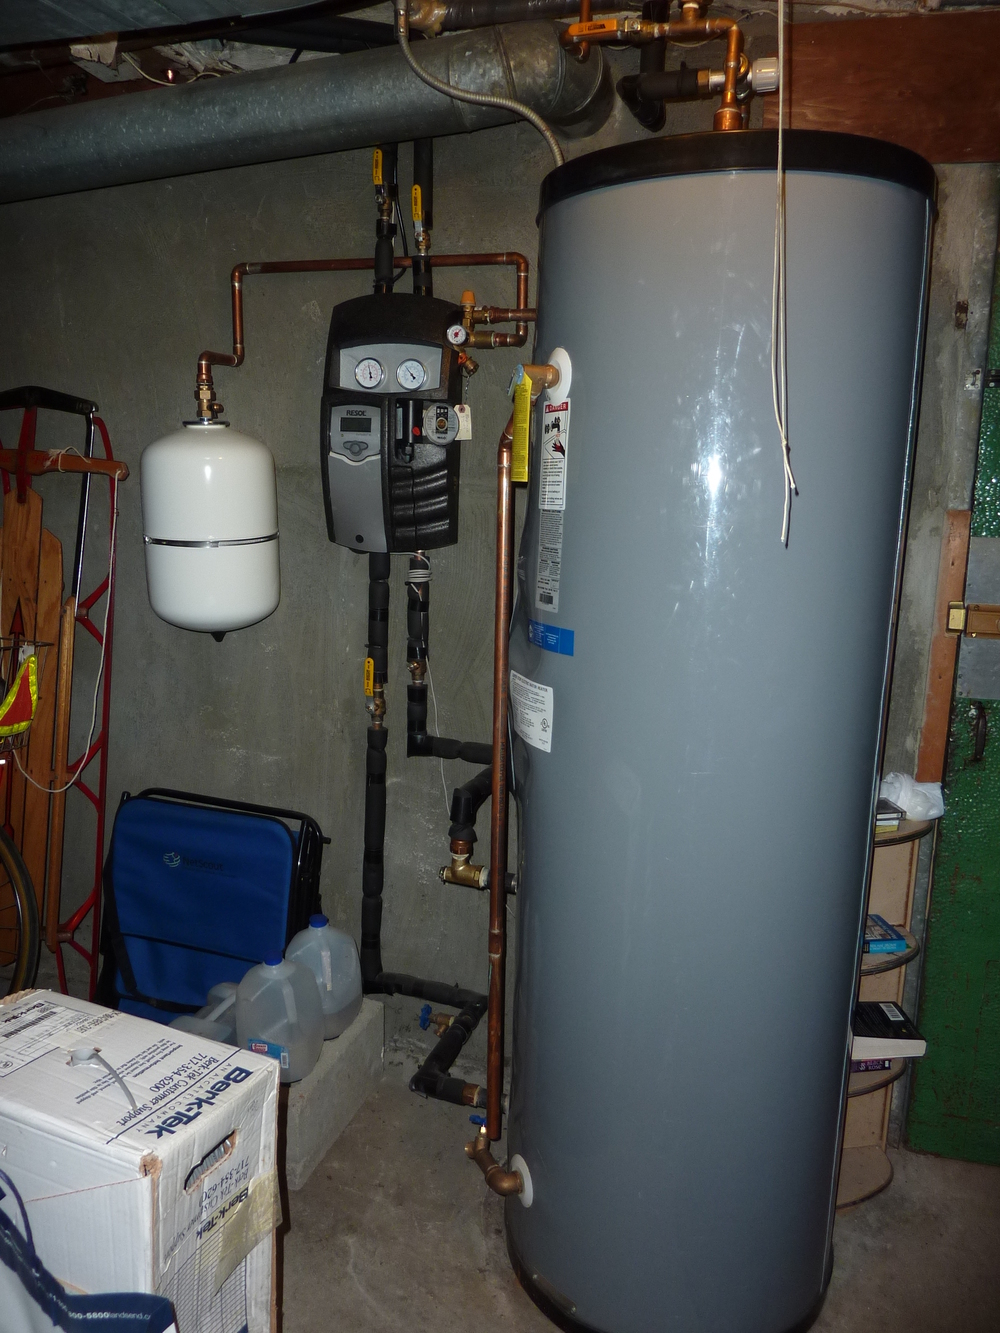 In the basement is a small, white tank for glycol, a pump (center), and an 80-gallon hot water storage tank.